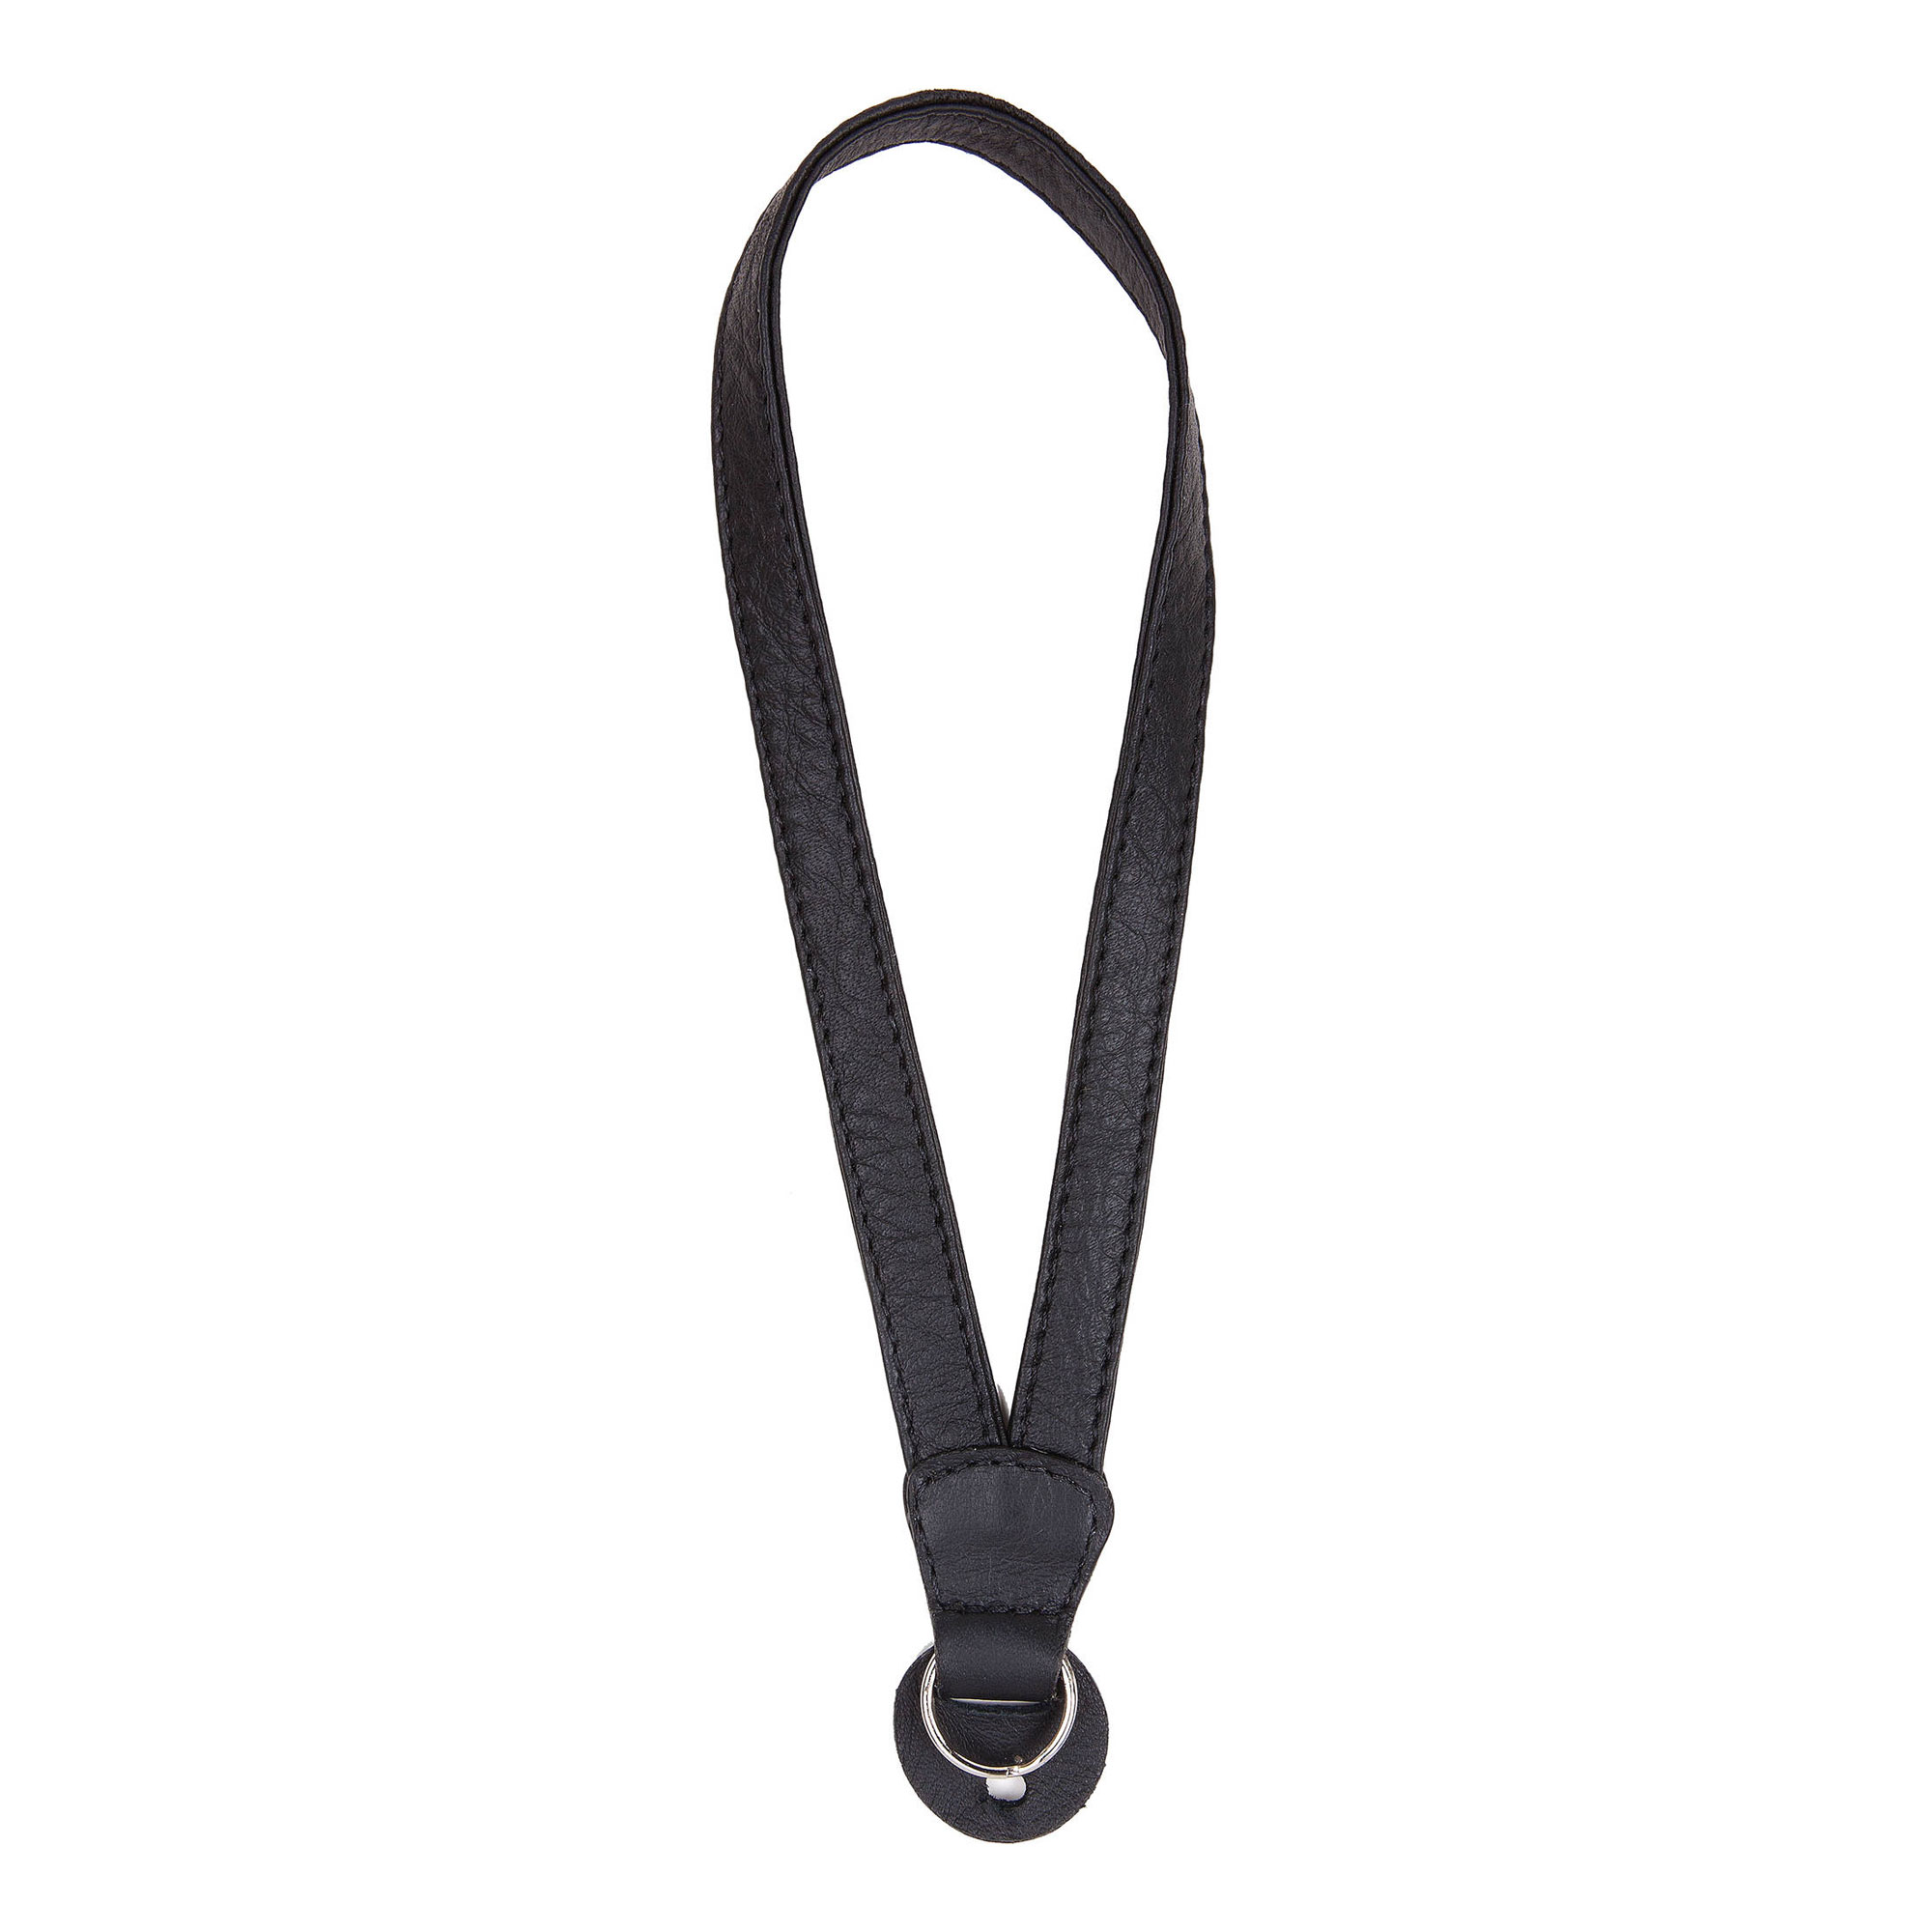 Image of Cecilia Gallery Leather Camera Wrist Strap with Ring Tethering (Black)